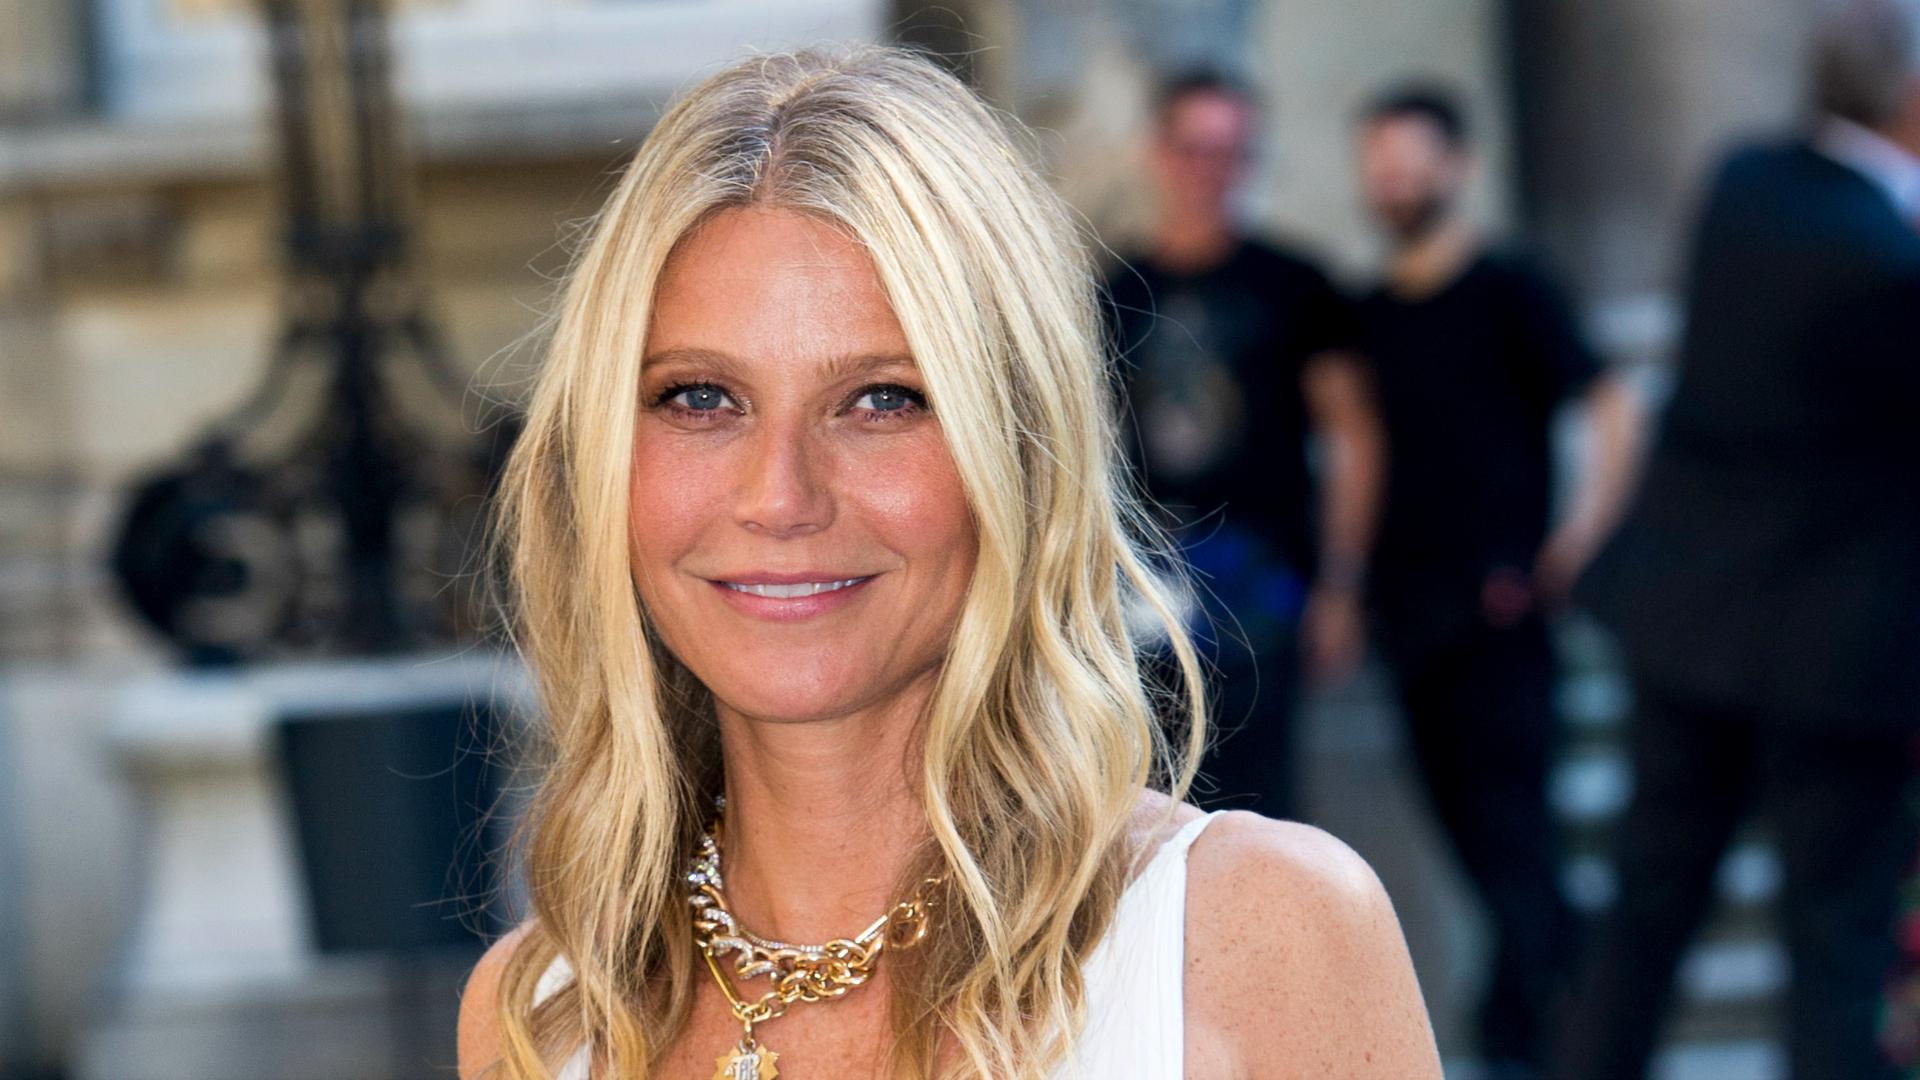 Famous women who suffered from postpartum depression